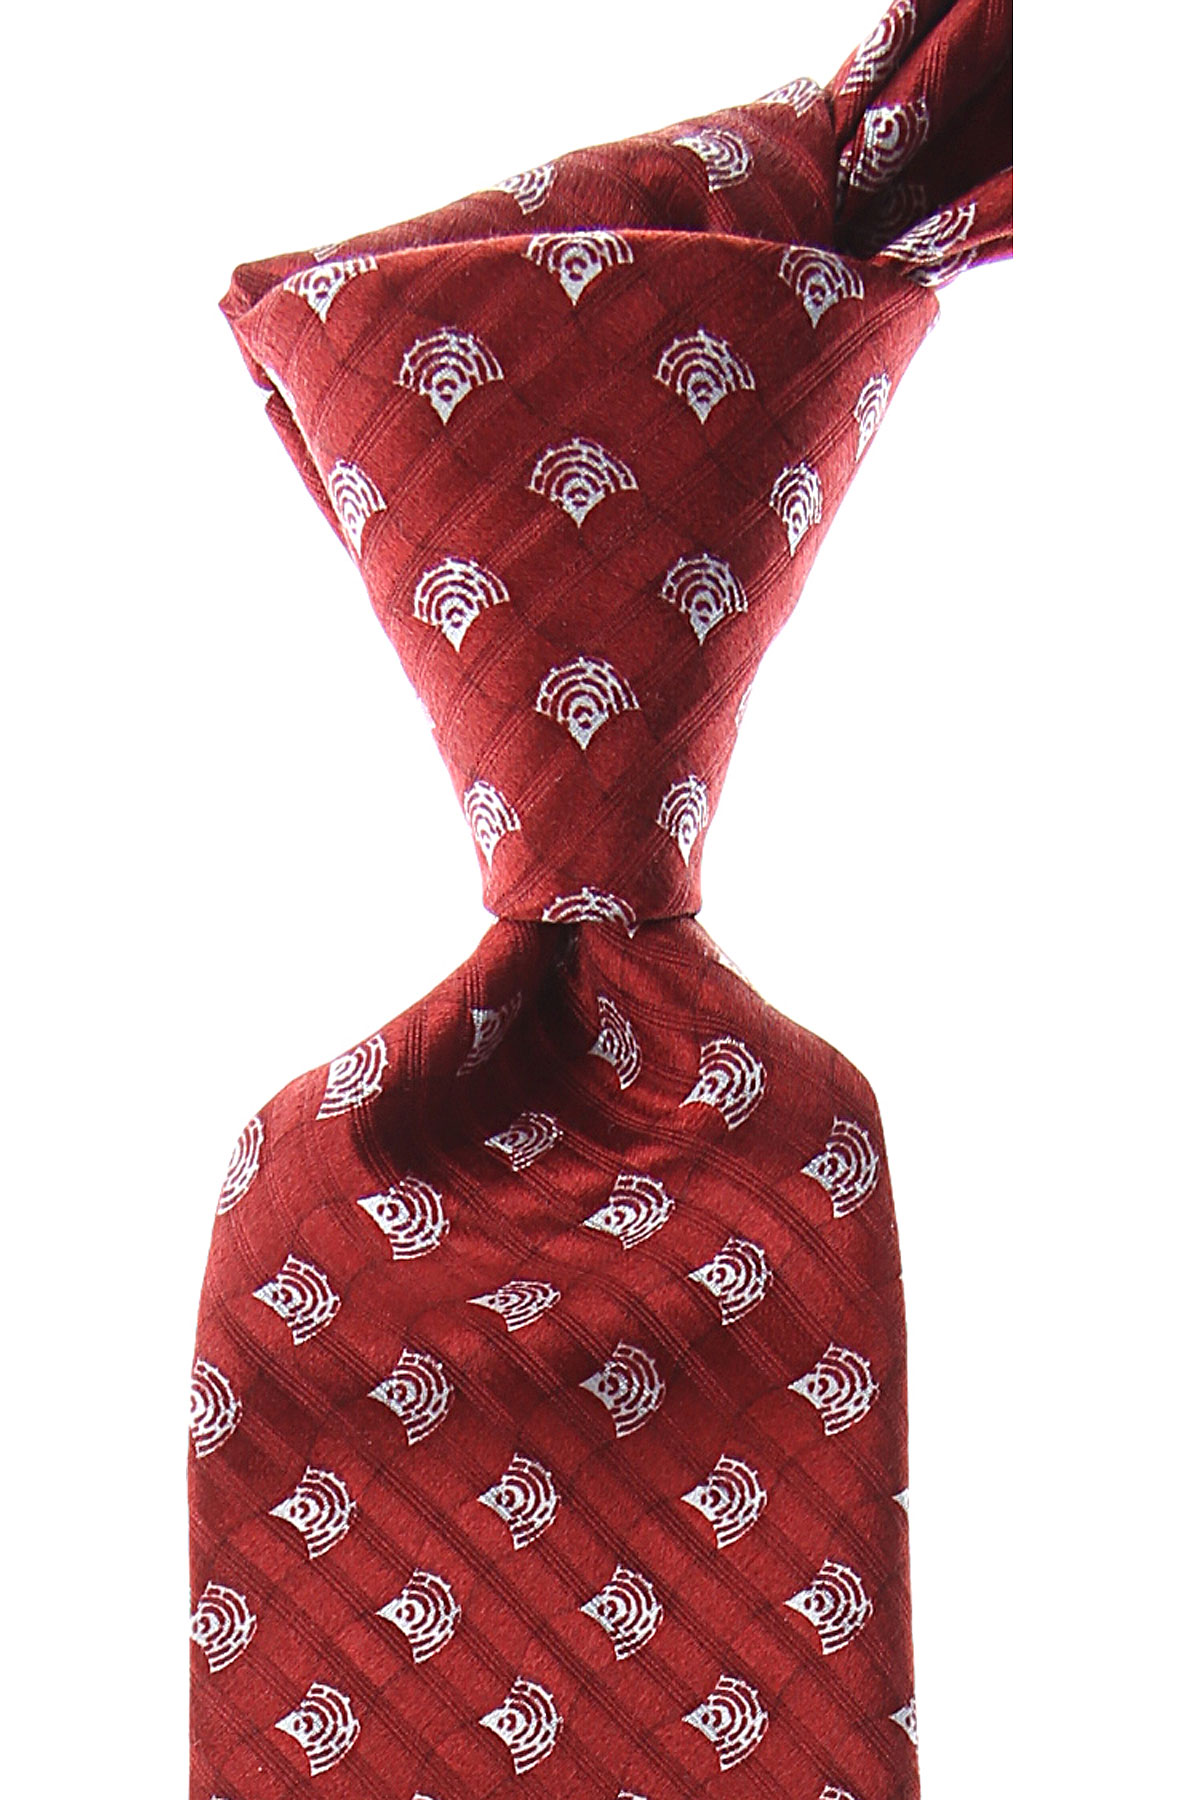 Giorgio_Armani_Ties_On_Sale_Crimson_Red_Silk_2019